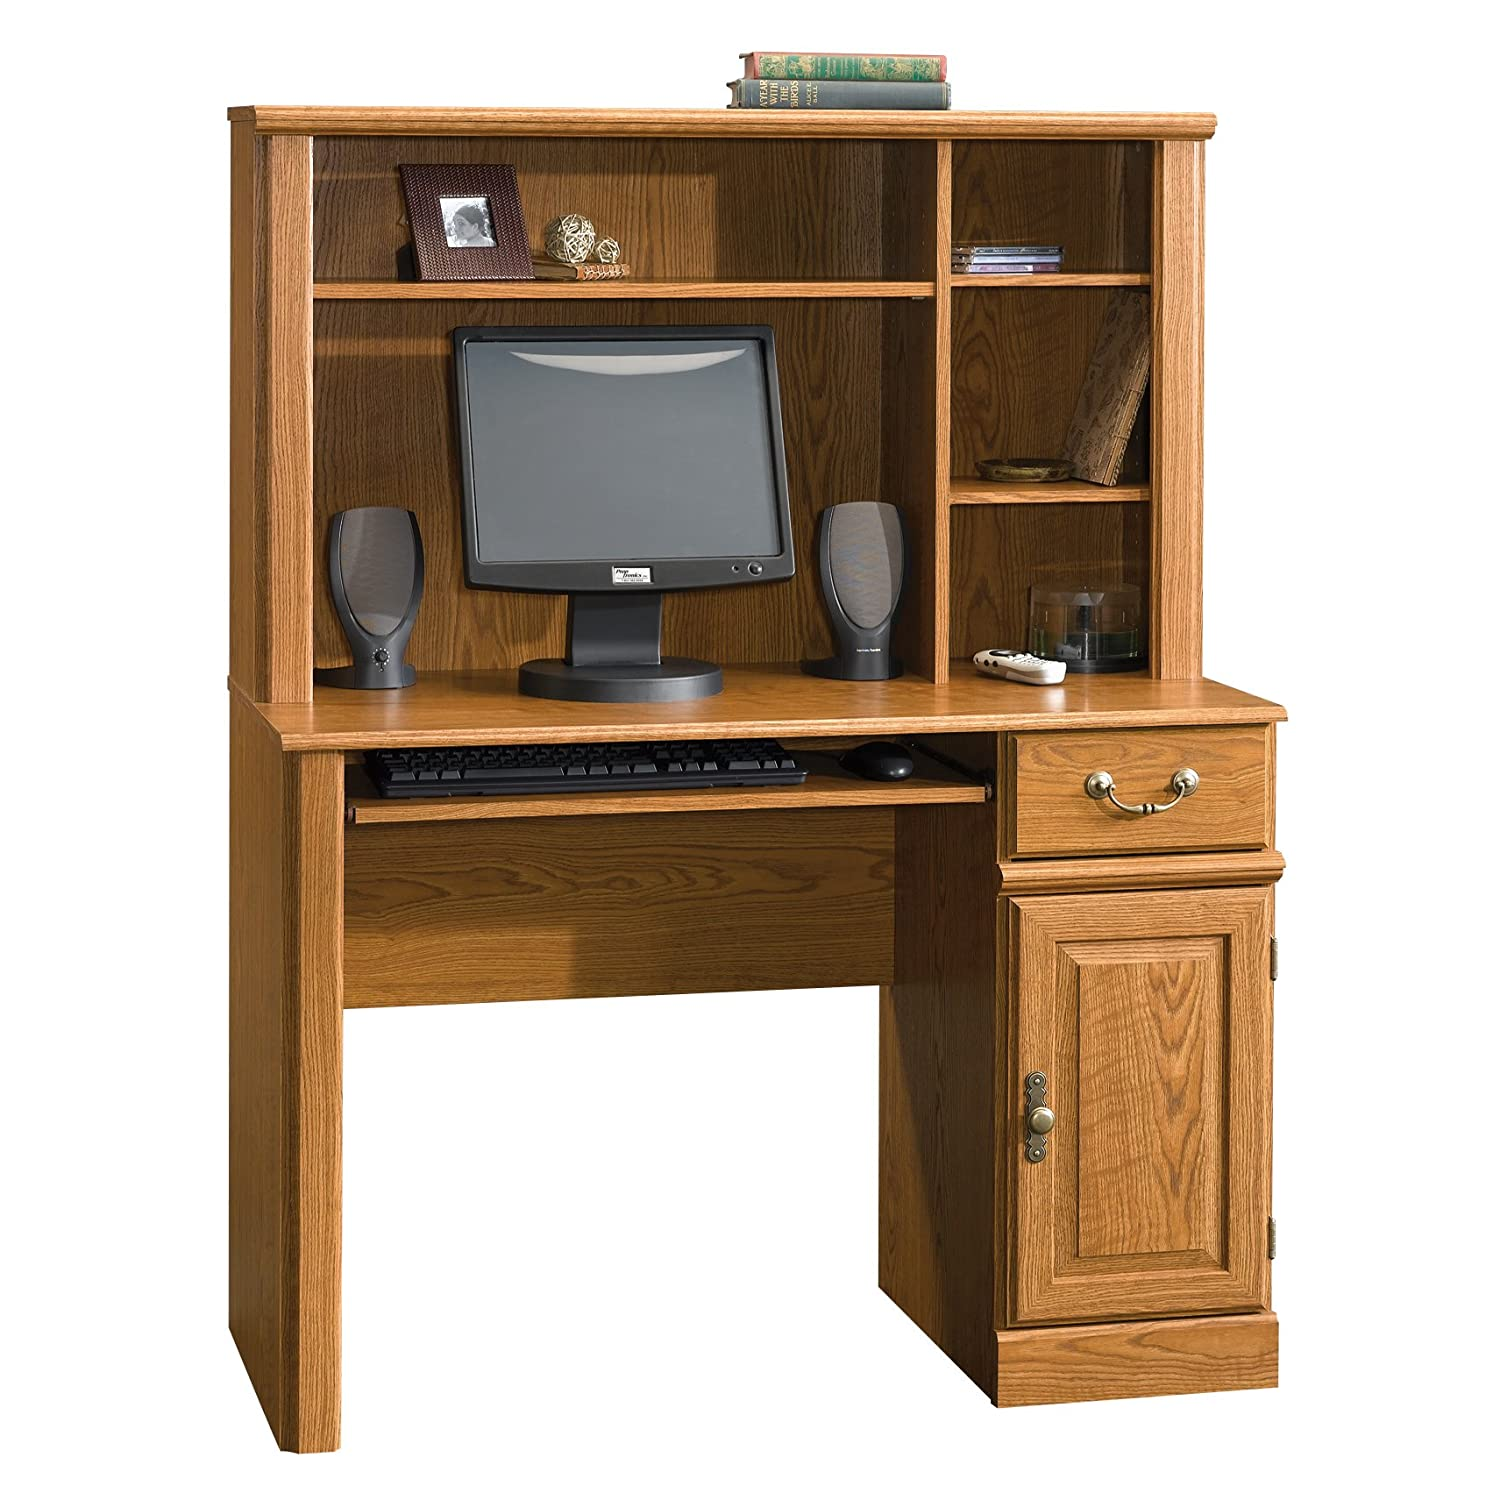 image ah then corner digital hutch to computer desk with for black desktower manly joyous tower ideas cozy ameriwood sauder